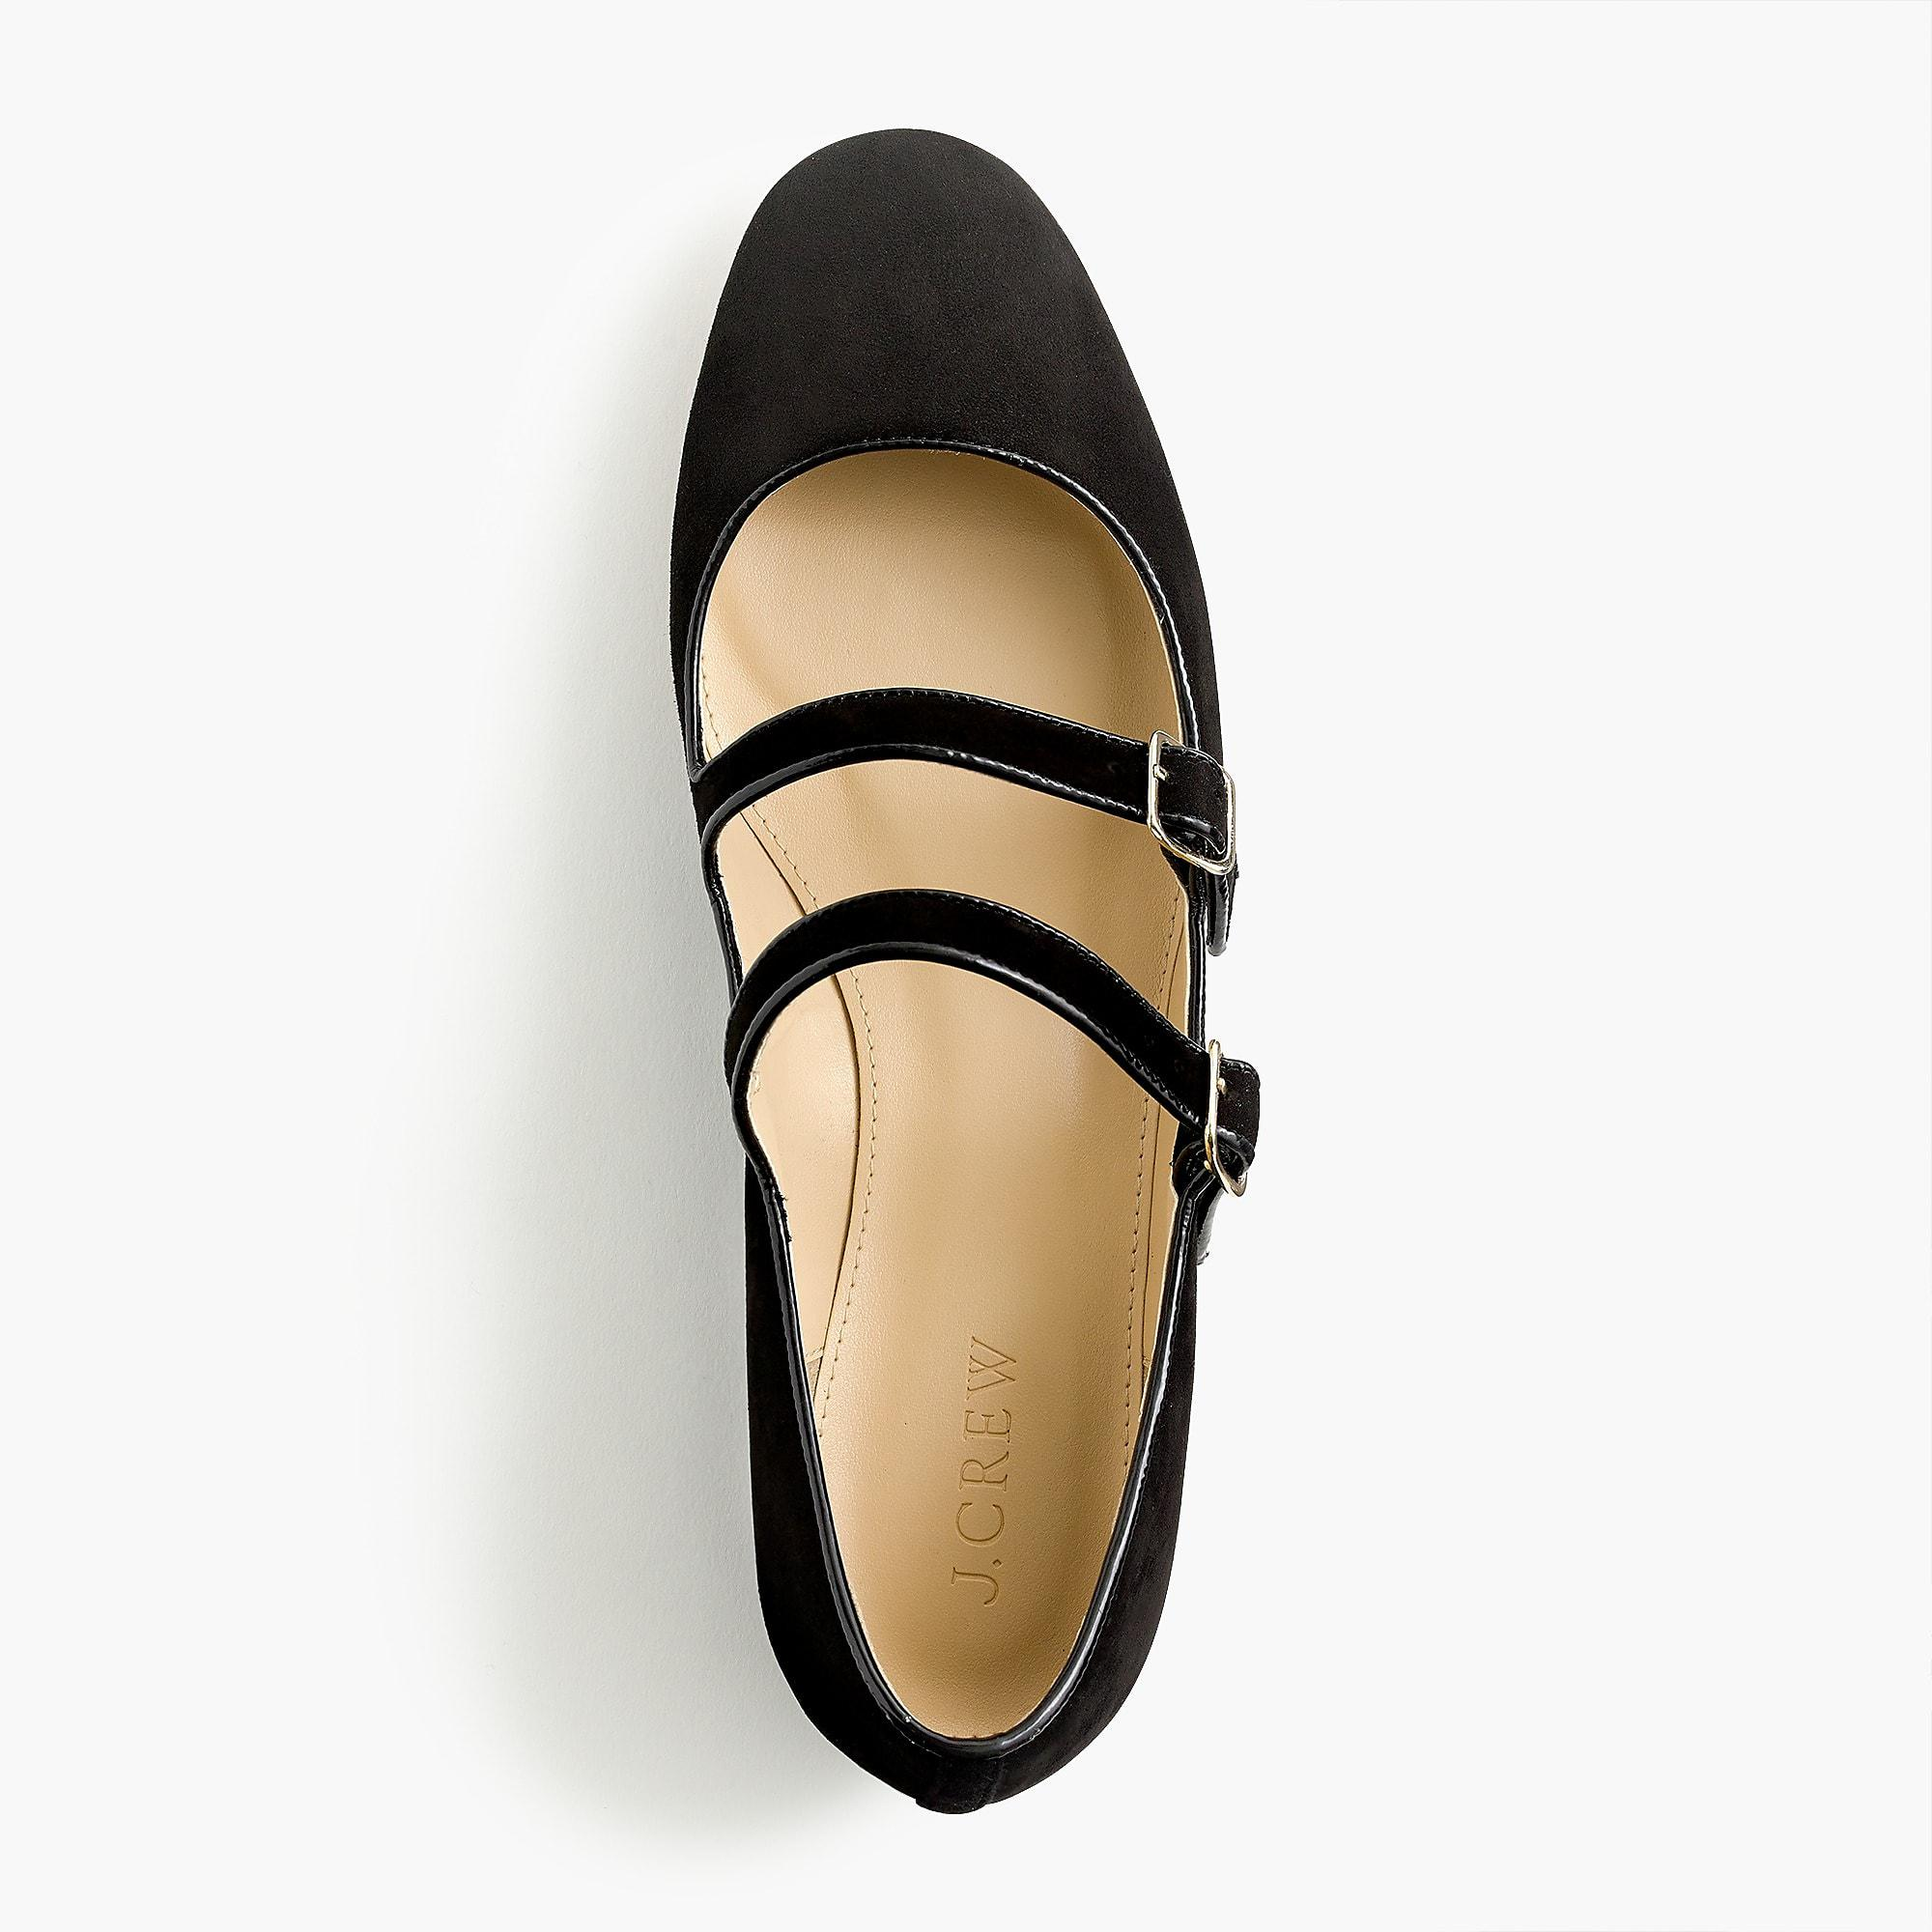 Lyst - J.Crew Multistrap Mary Jane Flats In Suede in Black